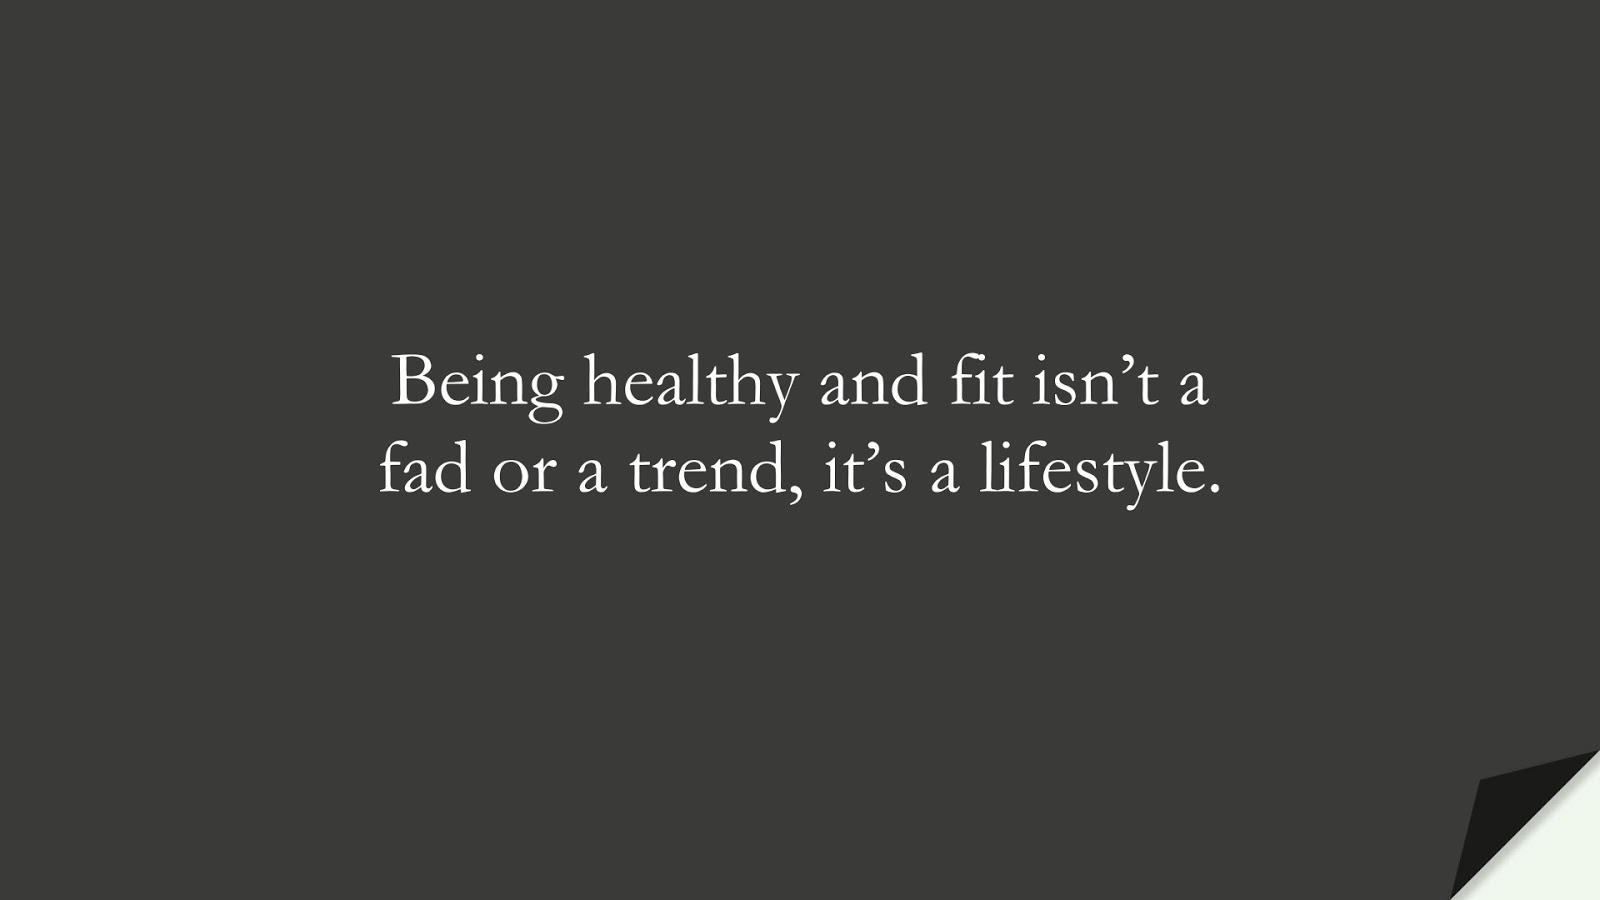 Being healthy and fit isn't a fad or a trend, it's a lifestyle.FALSE